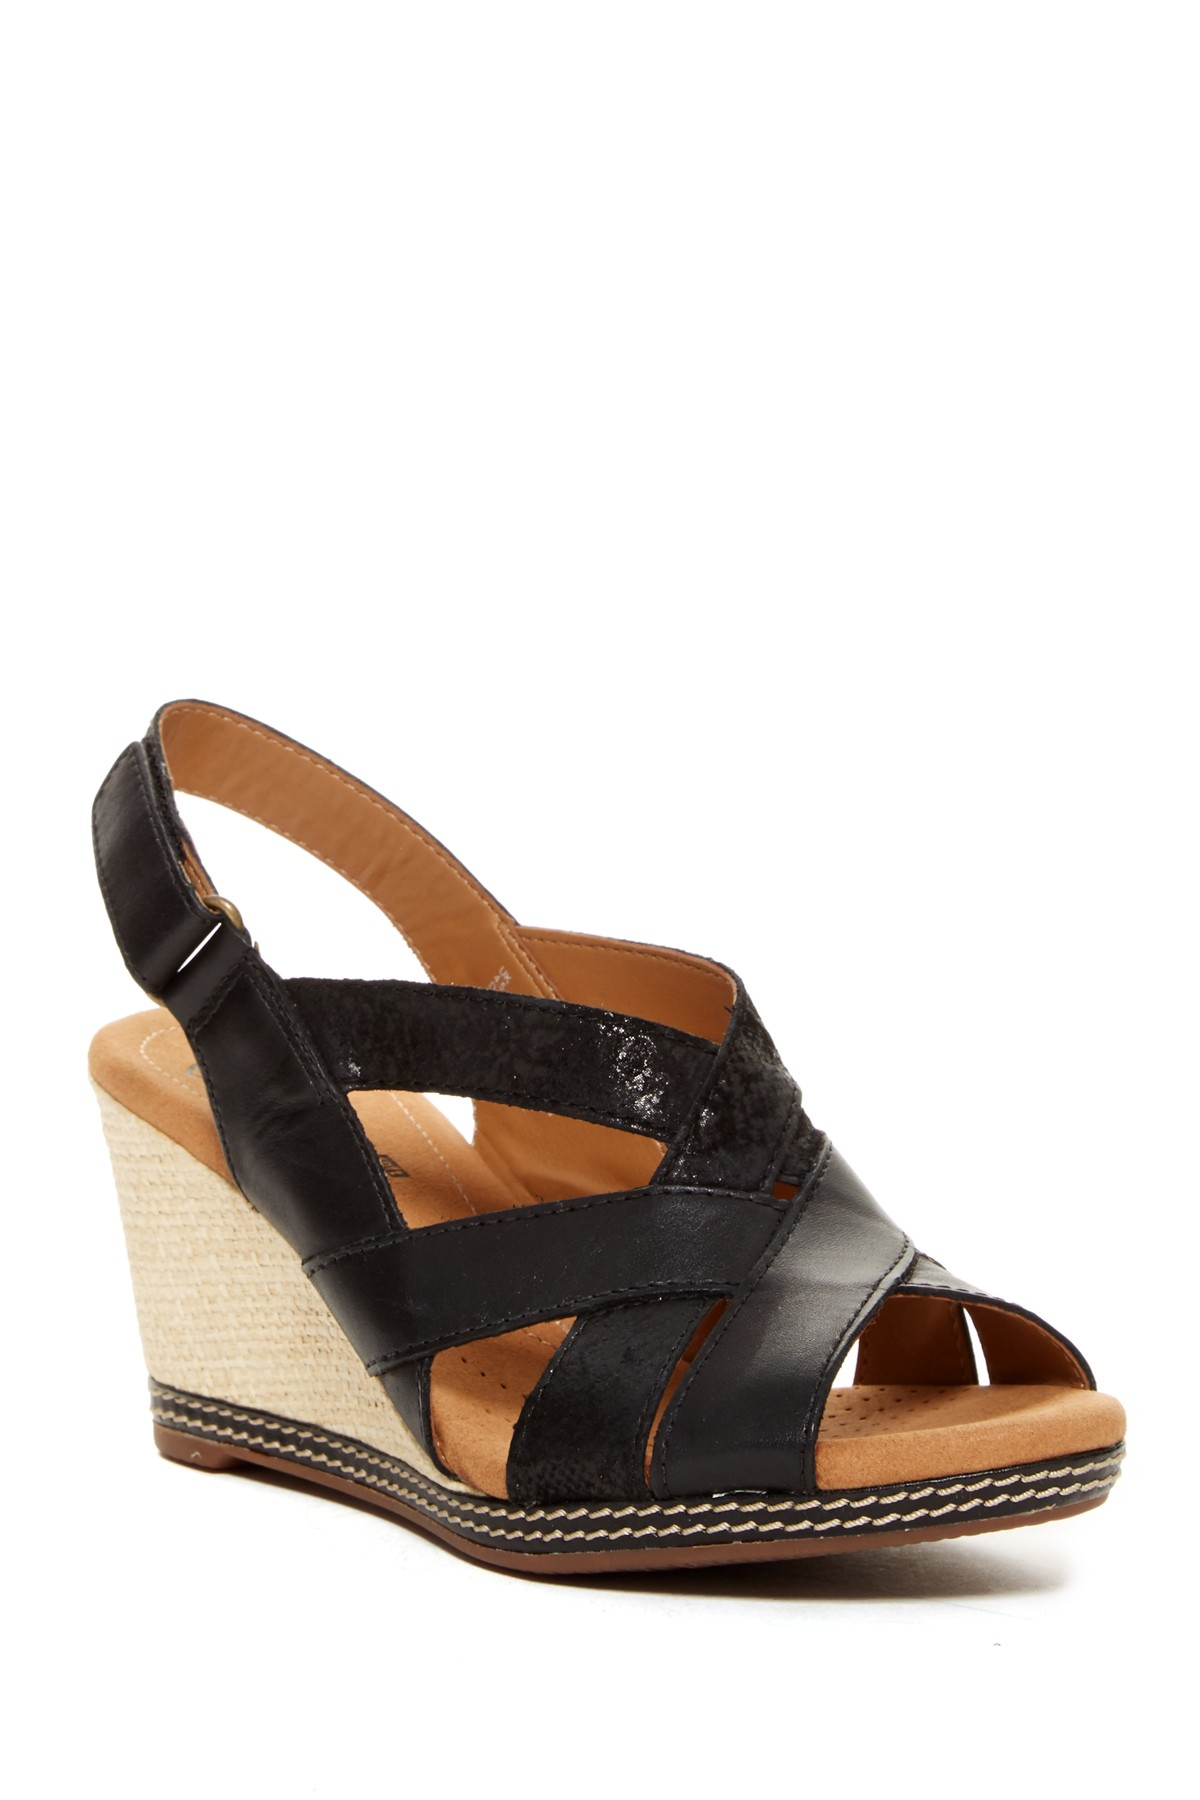 clarks helio coral wedge sandal wide width available in